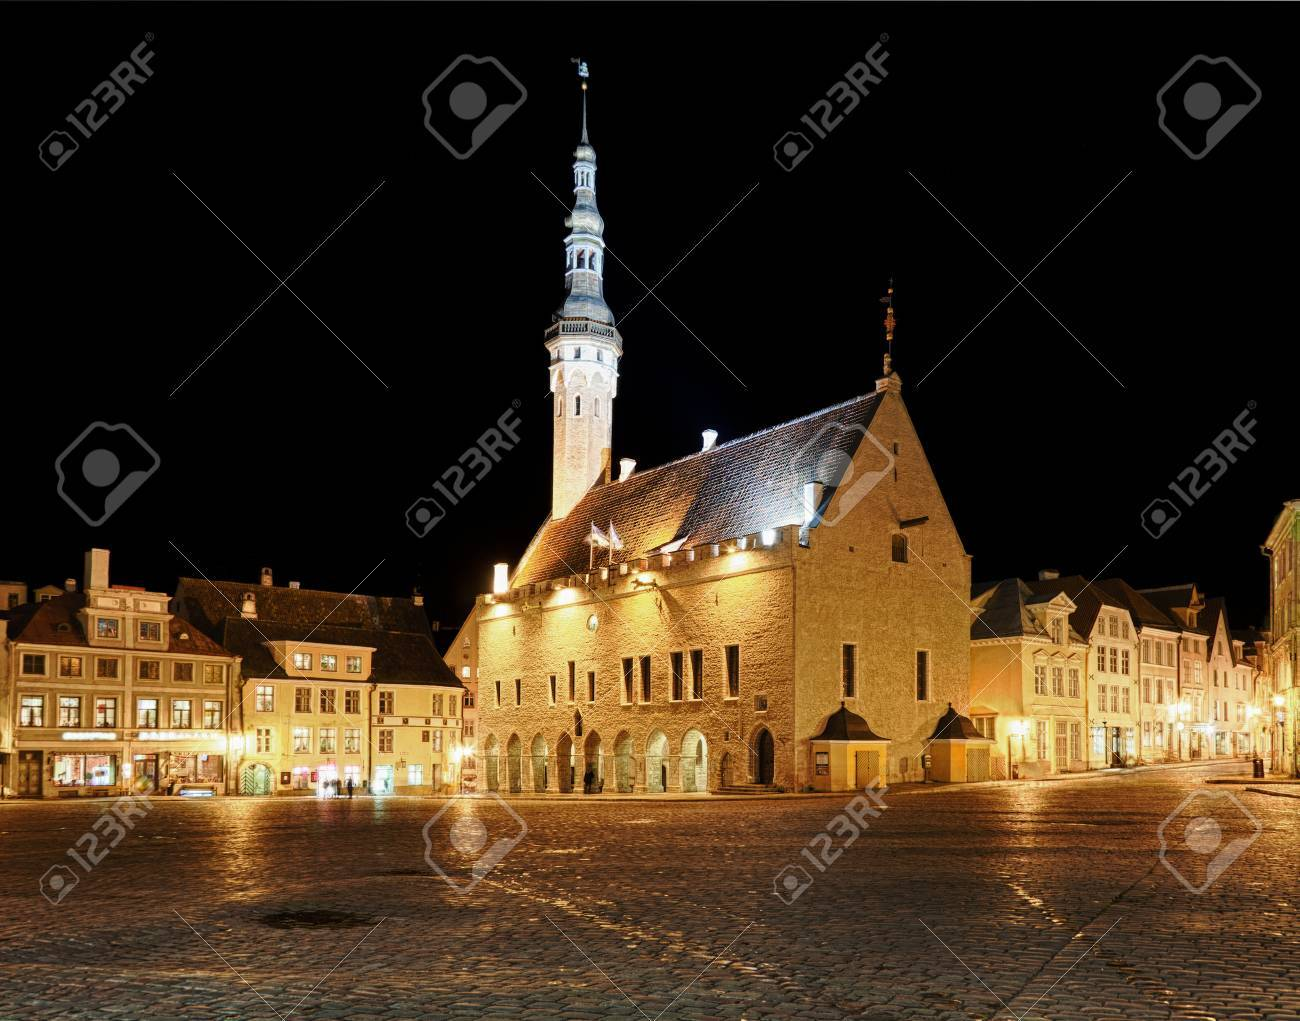 Tallinn town hall at night in Raekoya square showing the floodlit spire and tower of the hall Stock Photo - 8287291